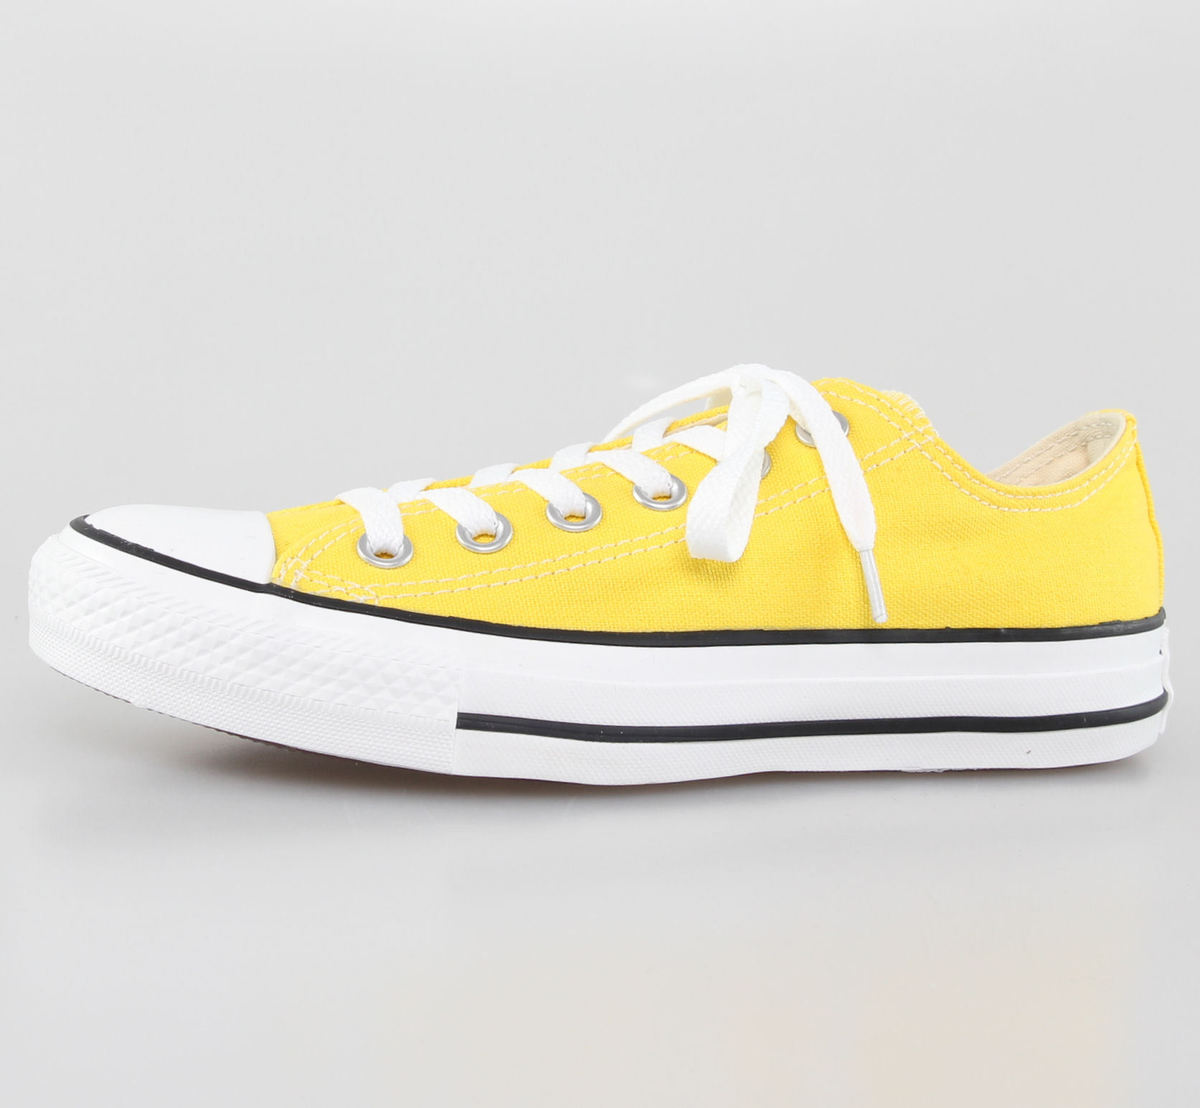 boty CONVERSE - Chuck Taylor All Star - Citrus - C147134